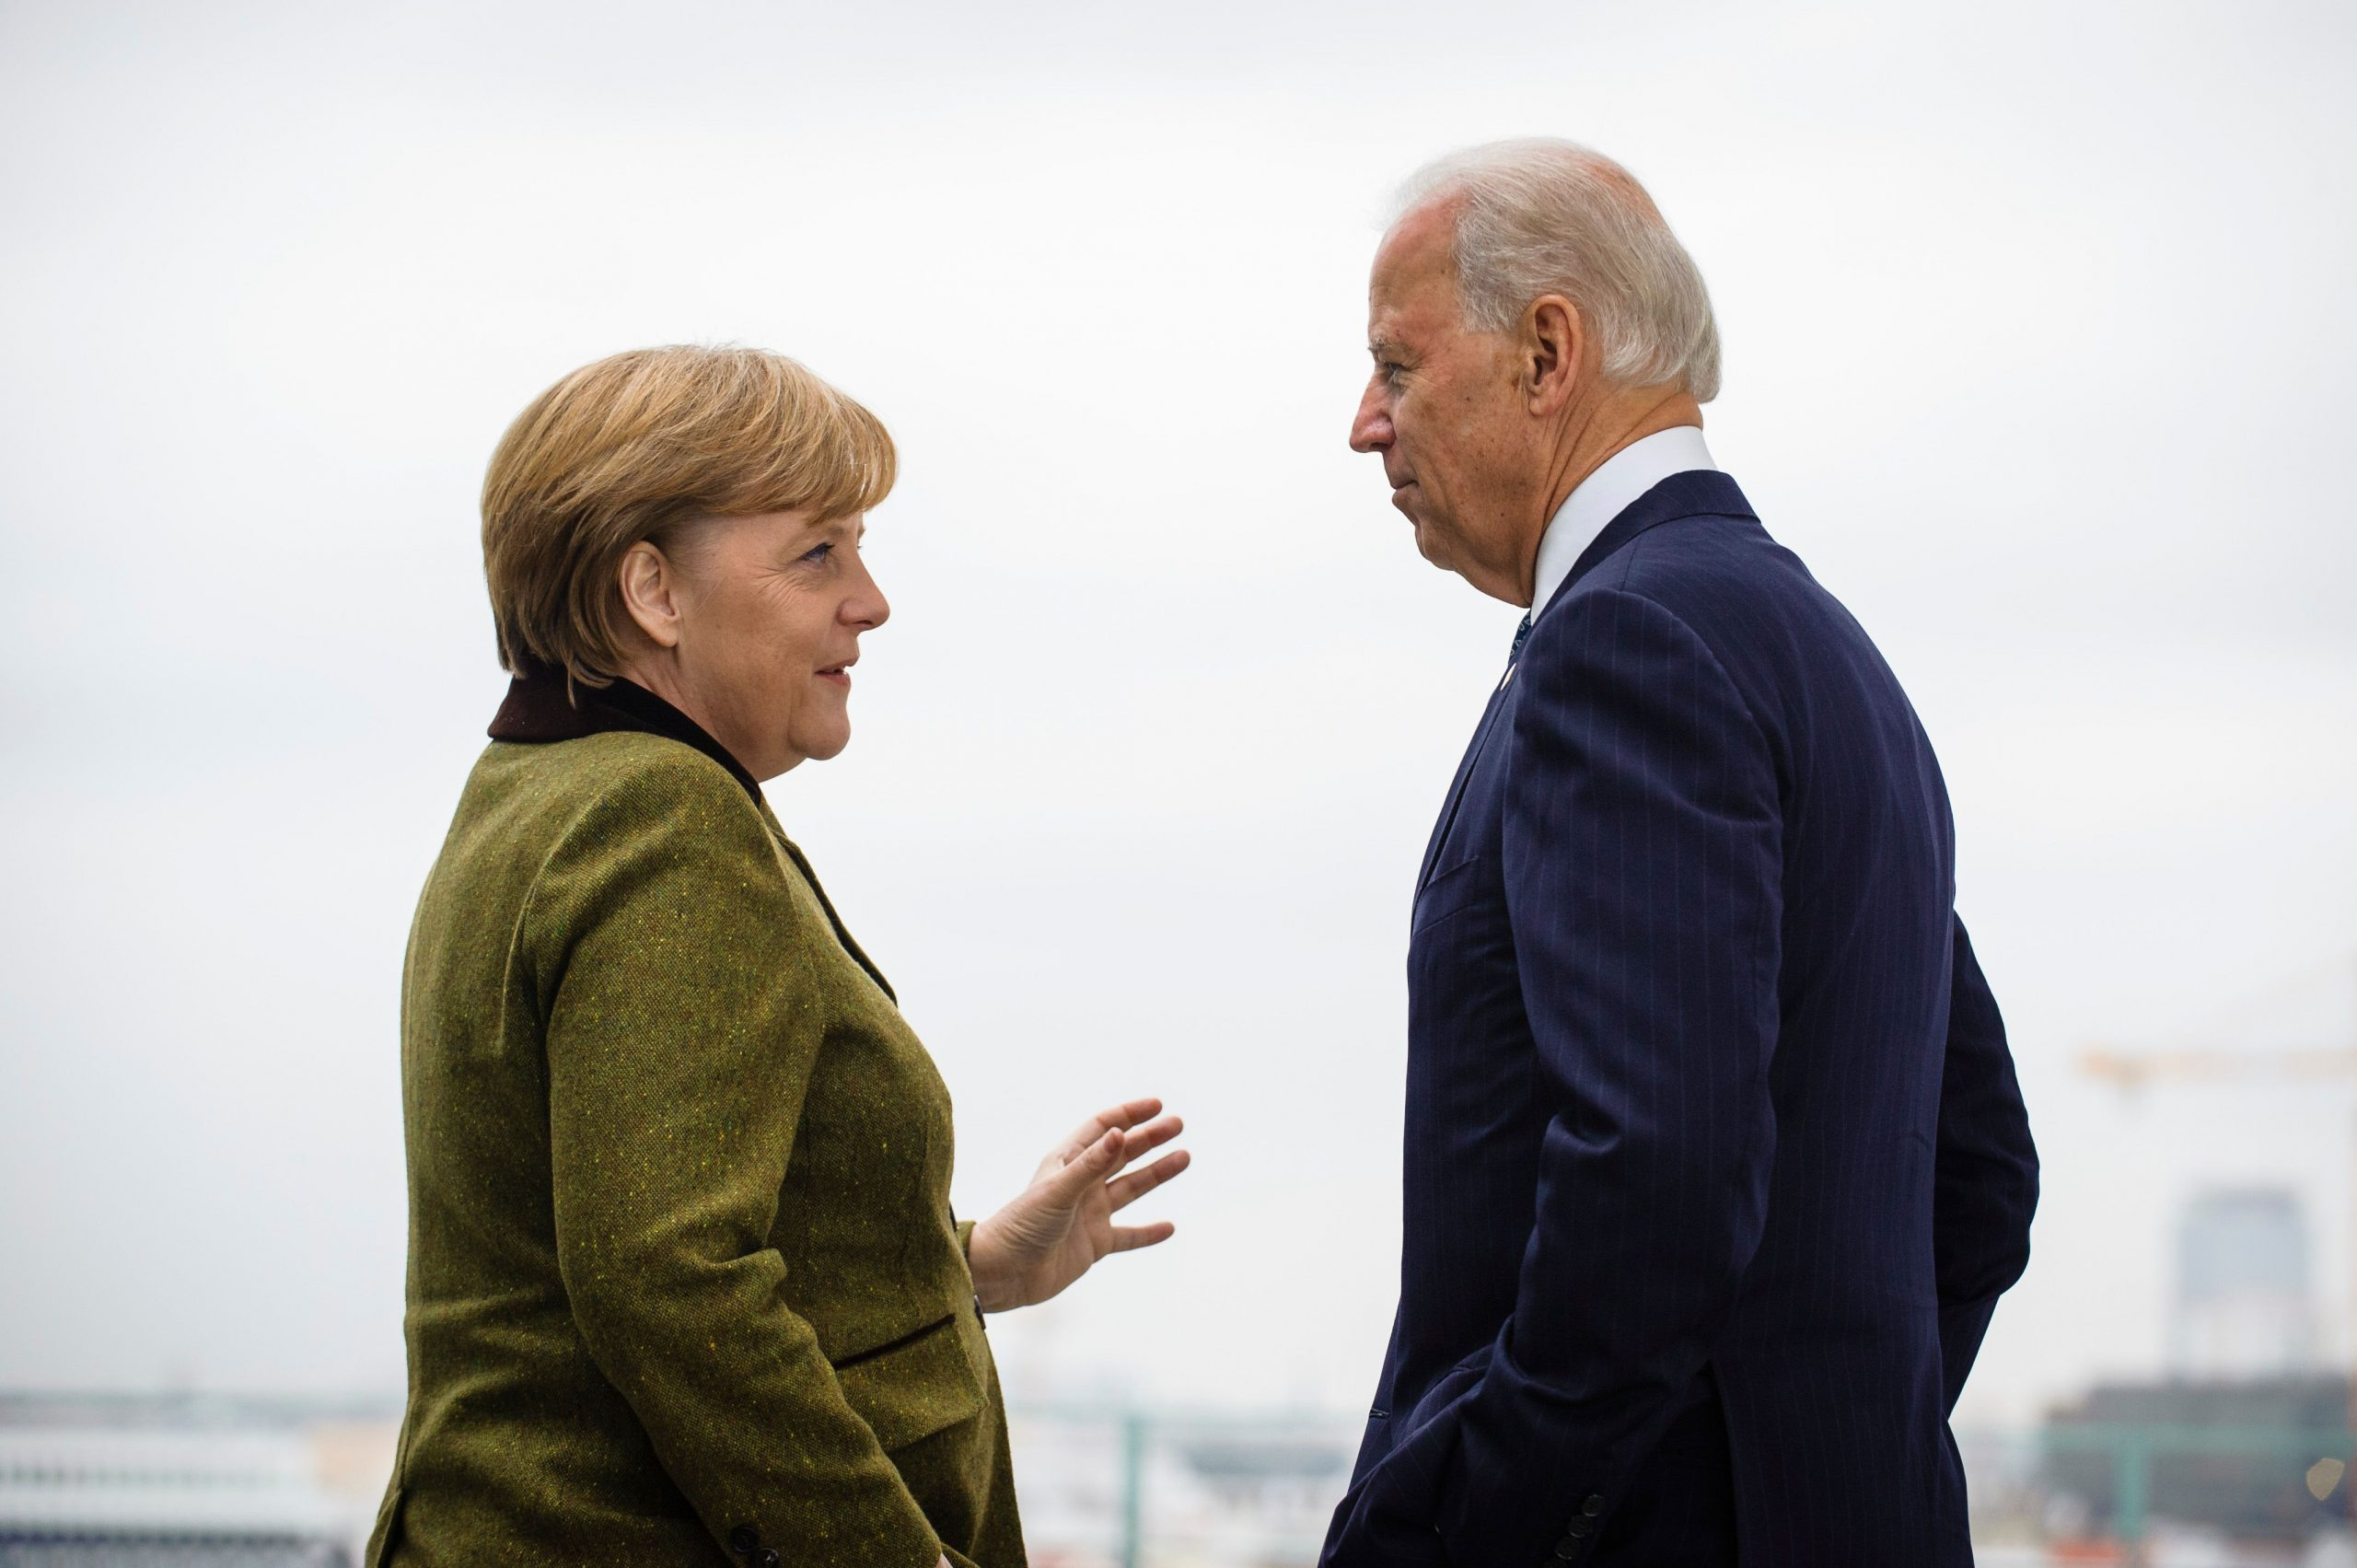 Merkel told how negotiations with U.S. on Nord Stream-2 are going